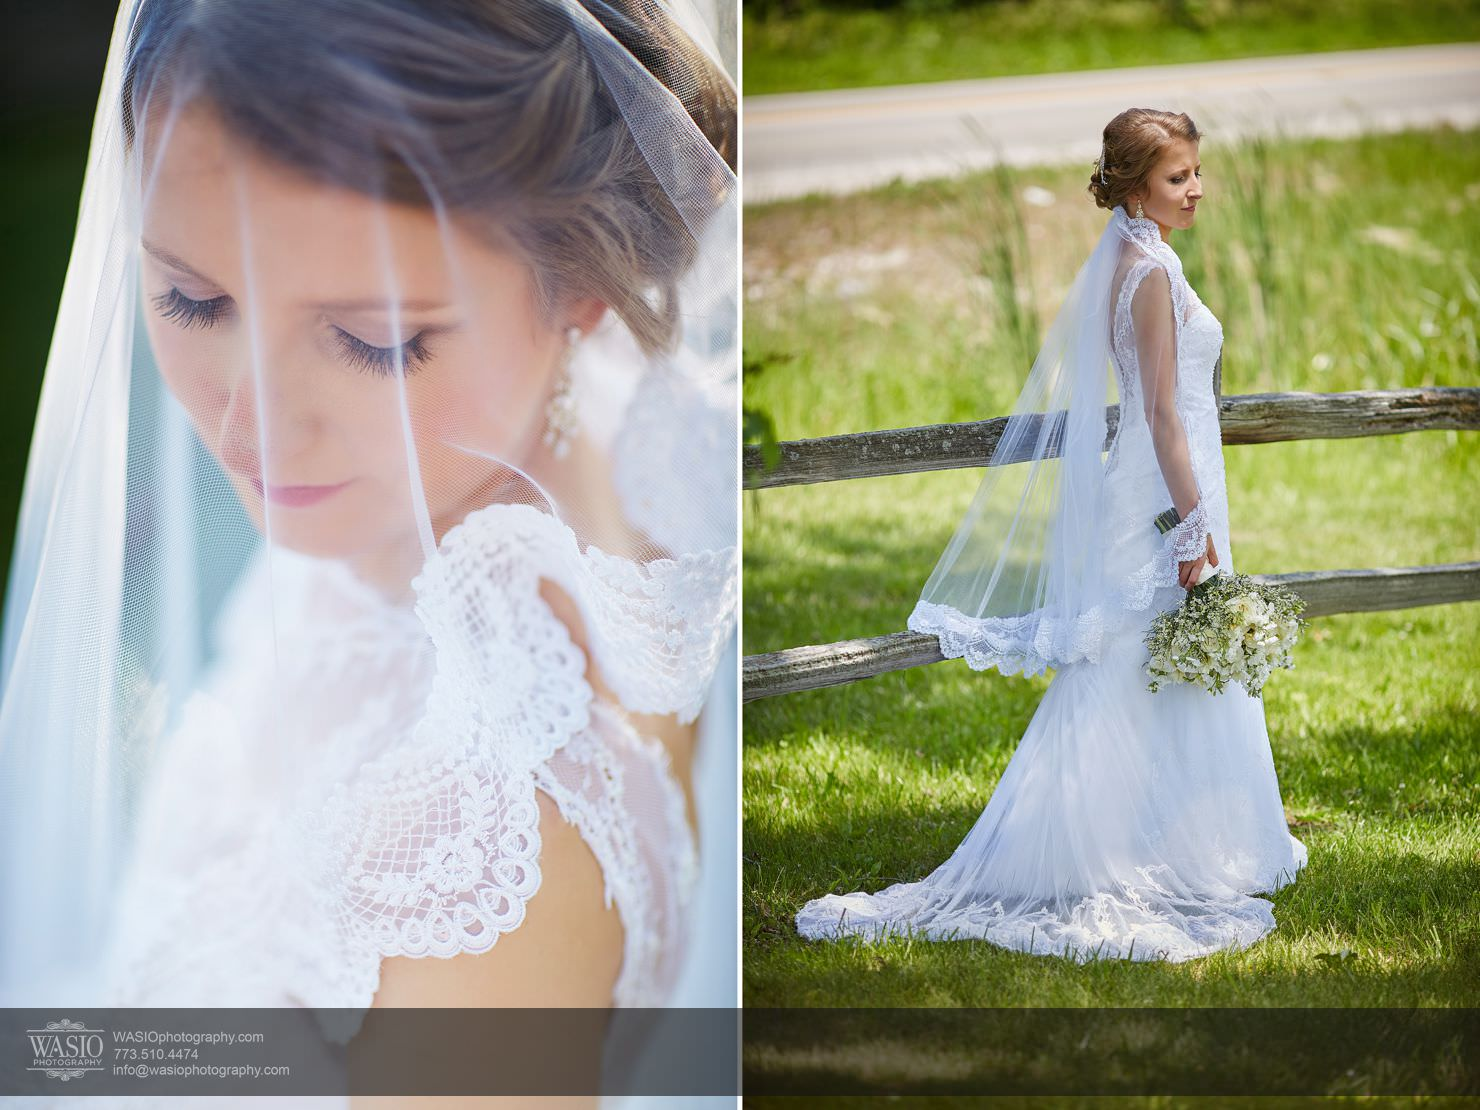 20_Lemont-Wedding_Anita-Pawel_05_Anita-Pawel-Lemont-Wedding_0O3A8124-copy Lemont Wedding - Anita + Pawel